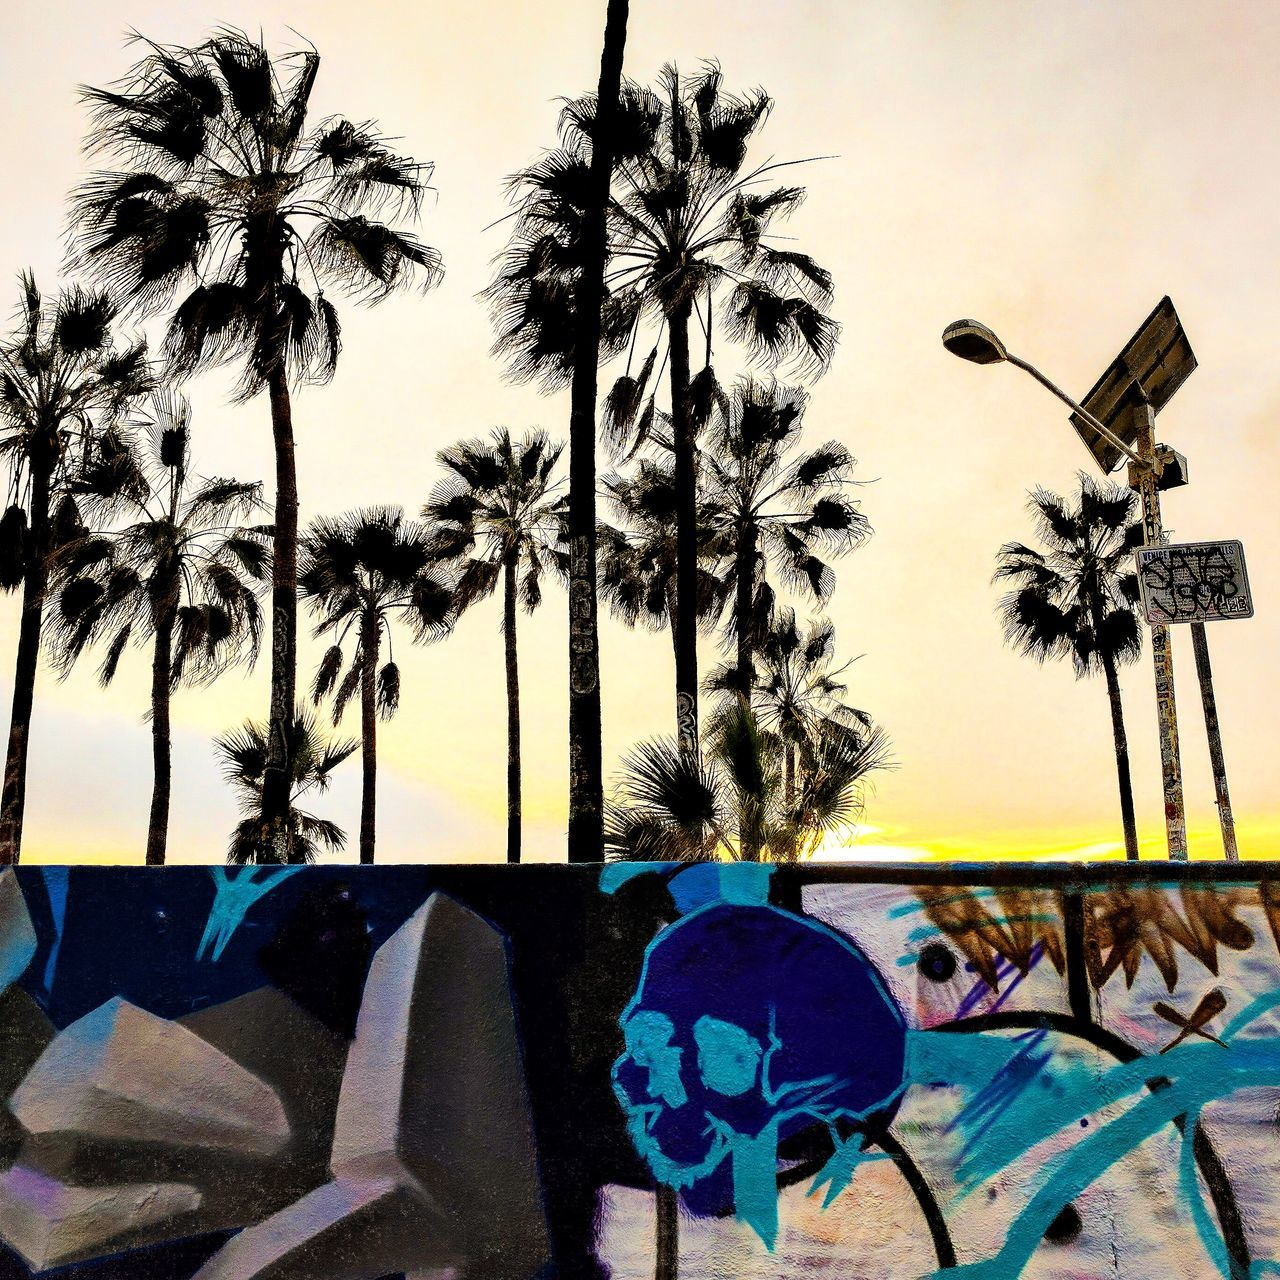 Palm Tree Sky Sunset Beach LiveanddirectfromLosAngeles Skull Graffiti Magichour Venice Beach Lightroom Mobile Shotbypixel No People Multi Colored Tree Outdoors Day Nature